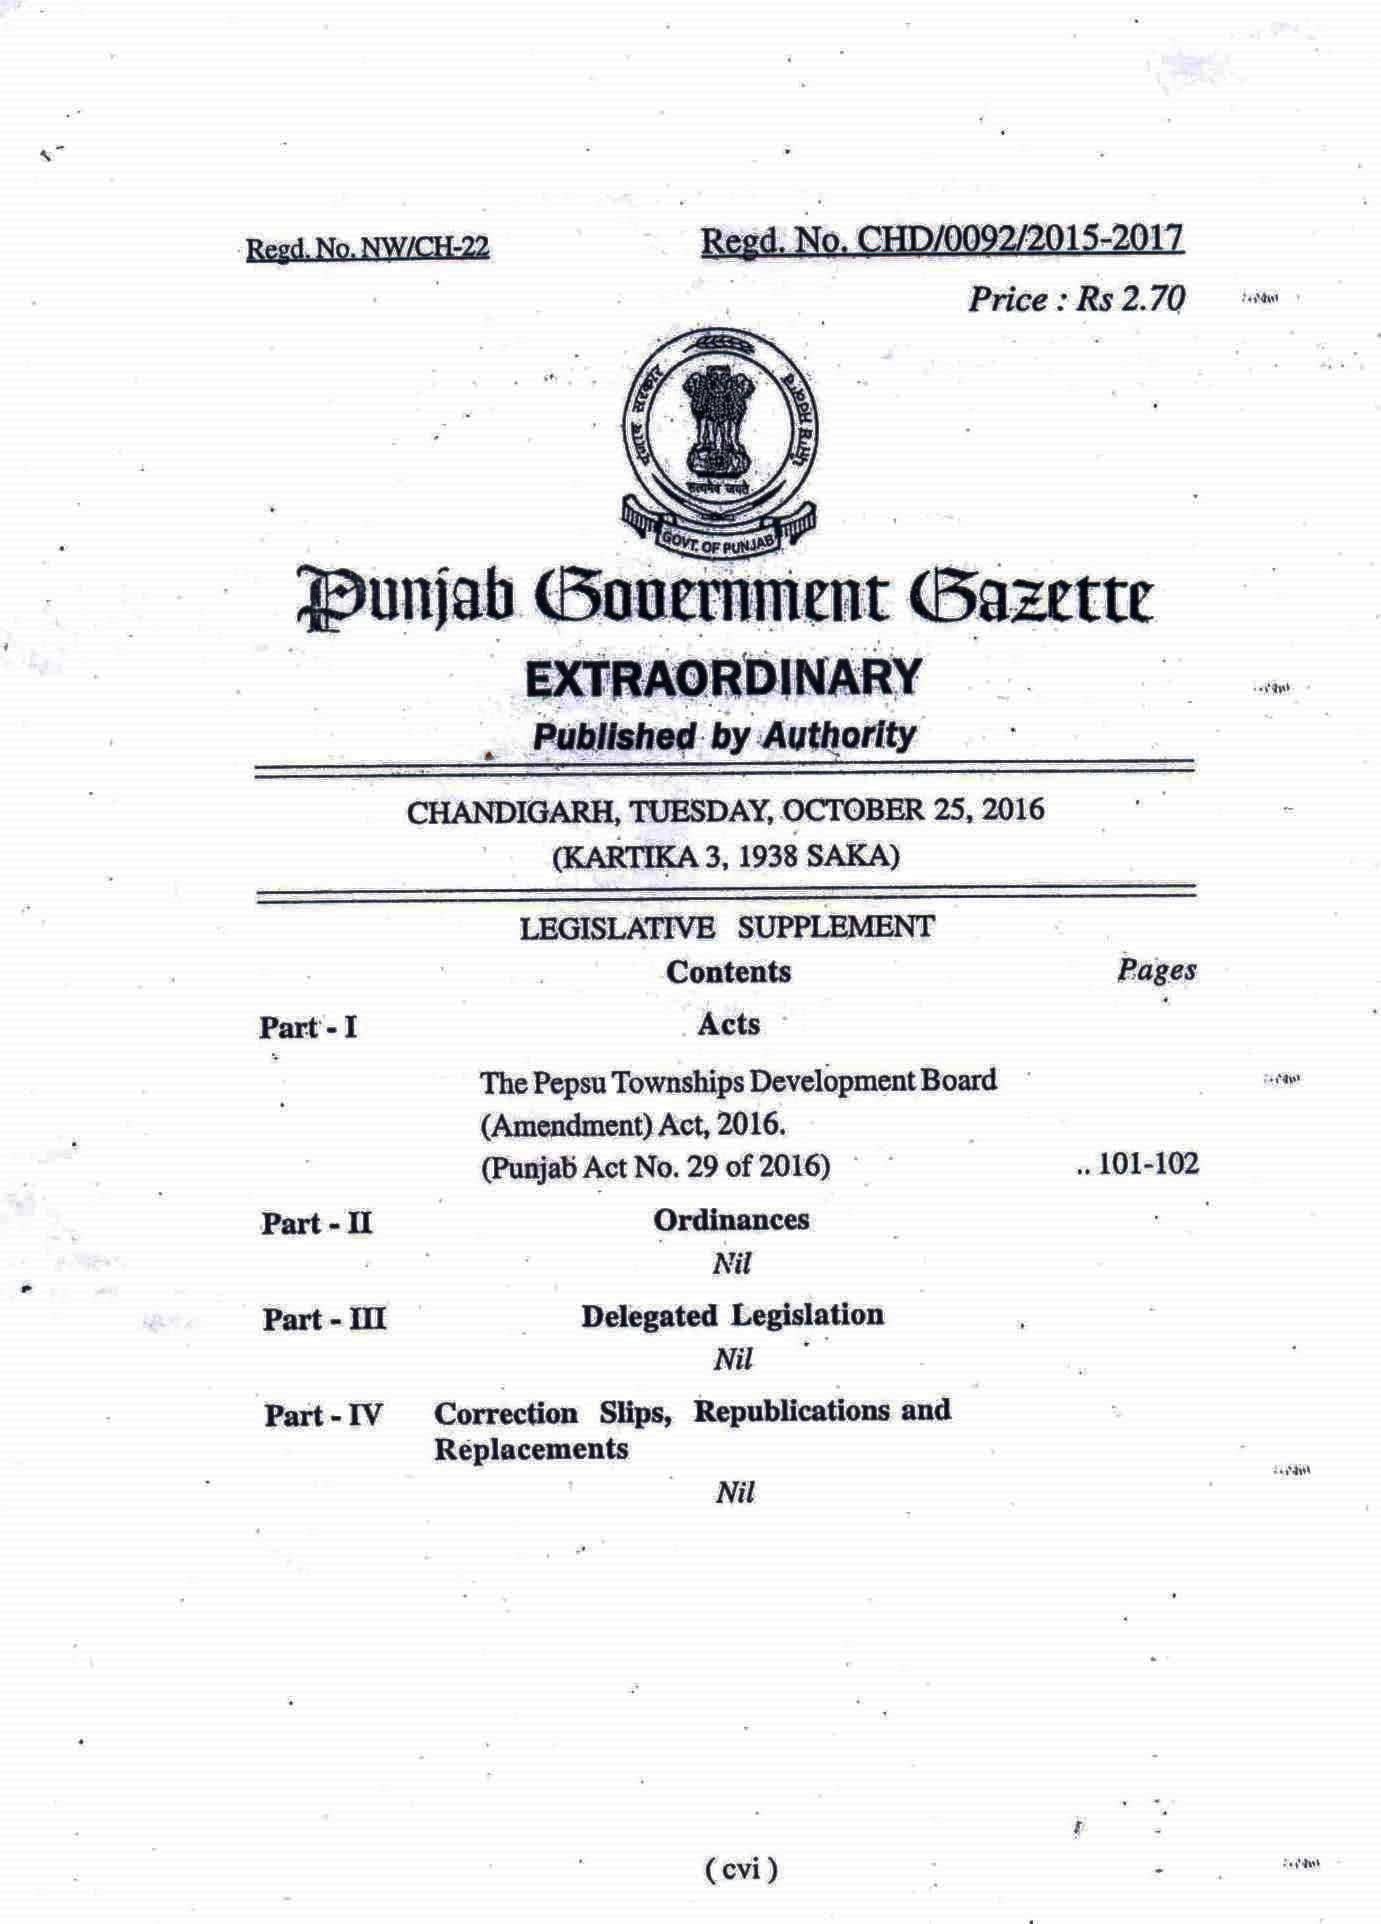 Amended act 2016-1